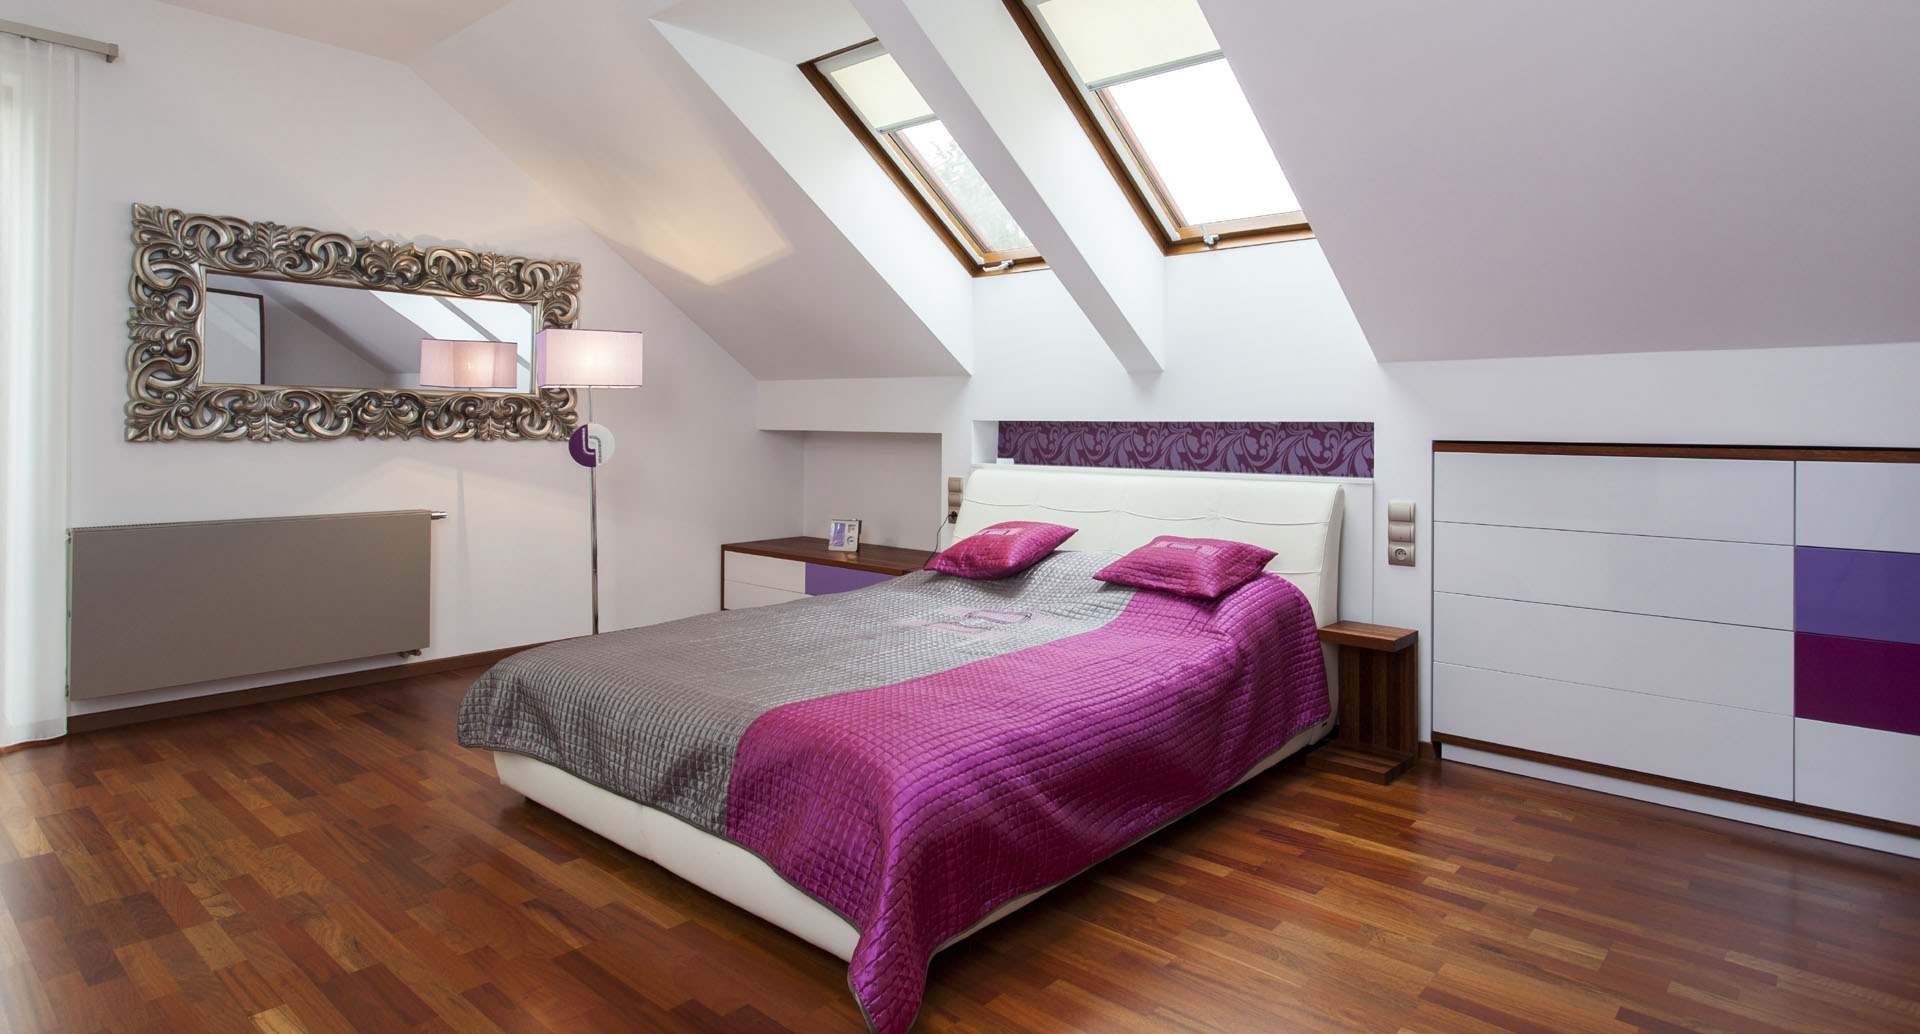 Professional Attic & Loft Conversions in Manchester